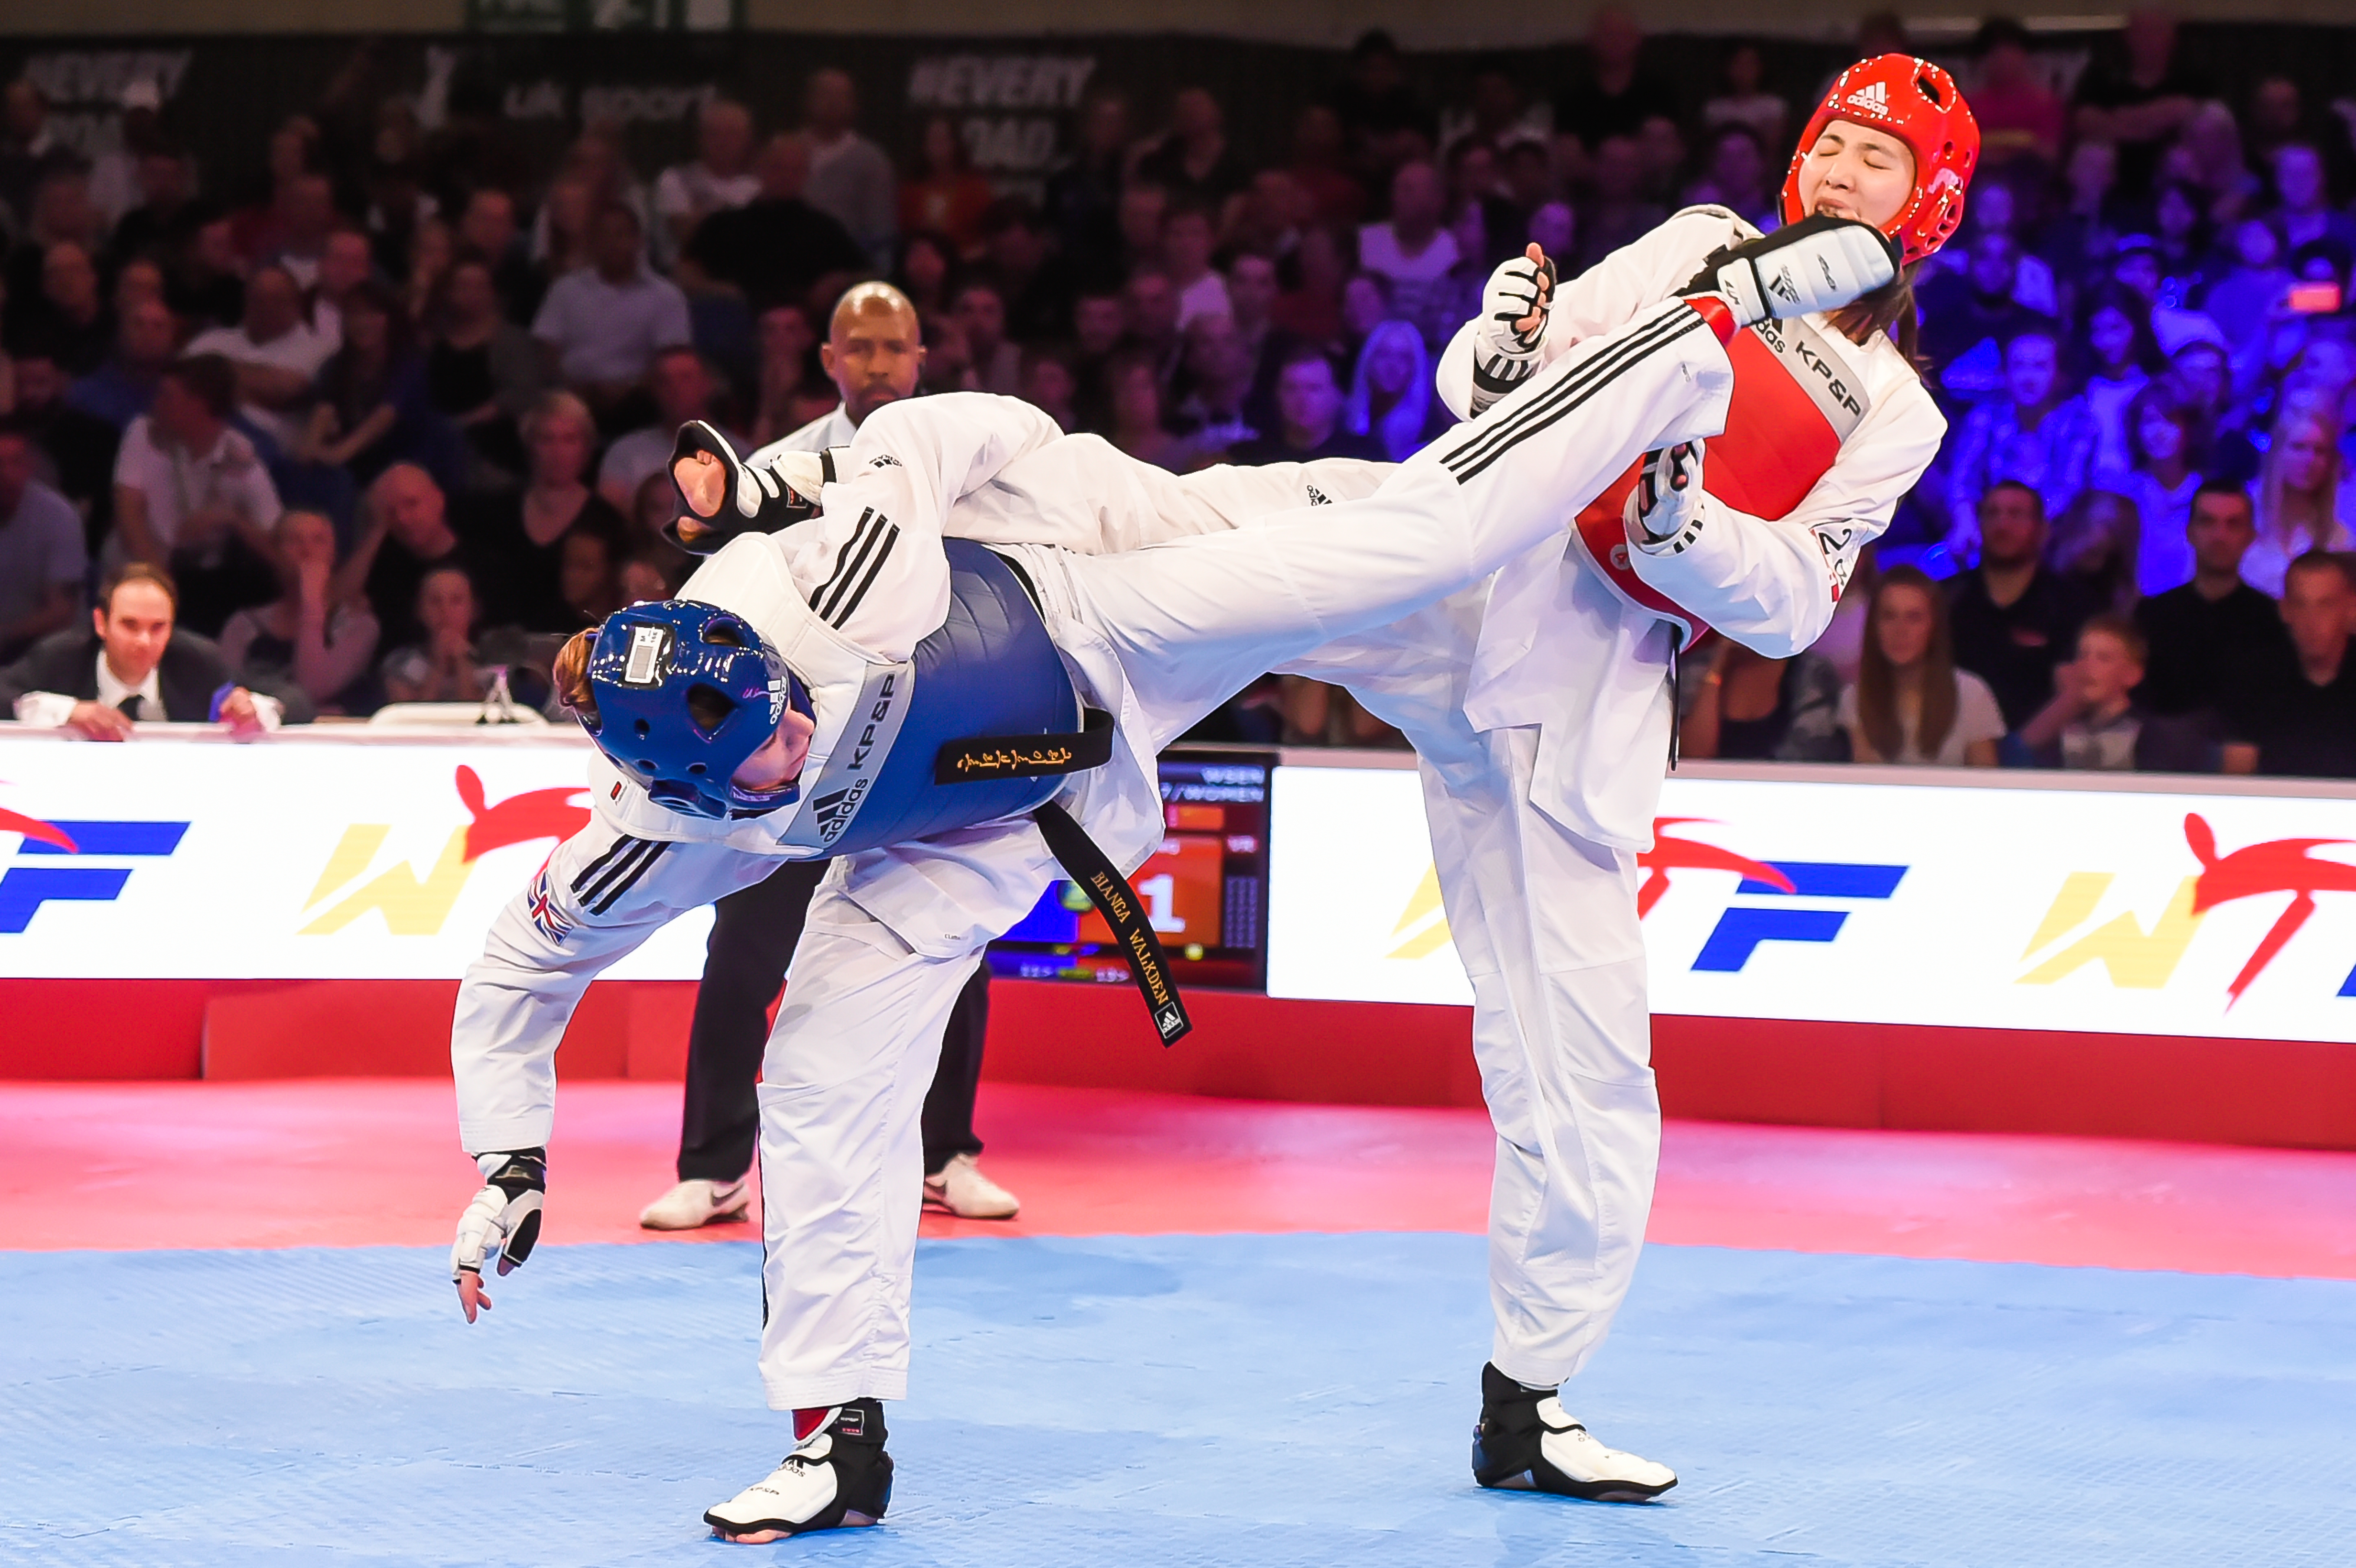 bianca-walkden-gp-manchester-2015-rights-free-courtesy-of-gb-taekwondo